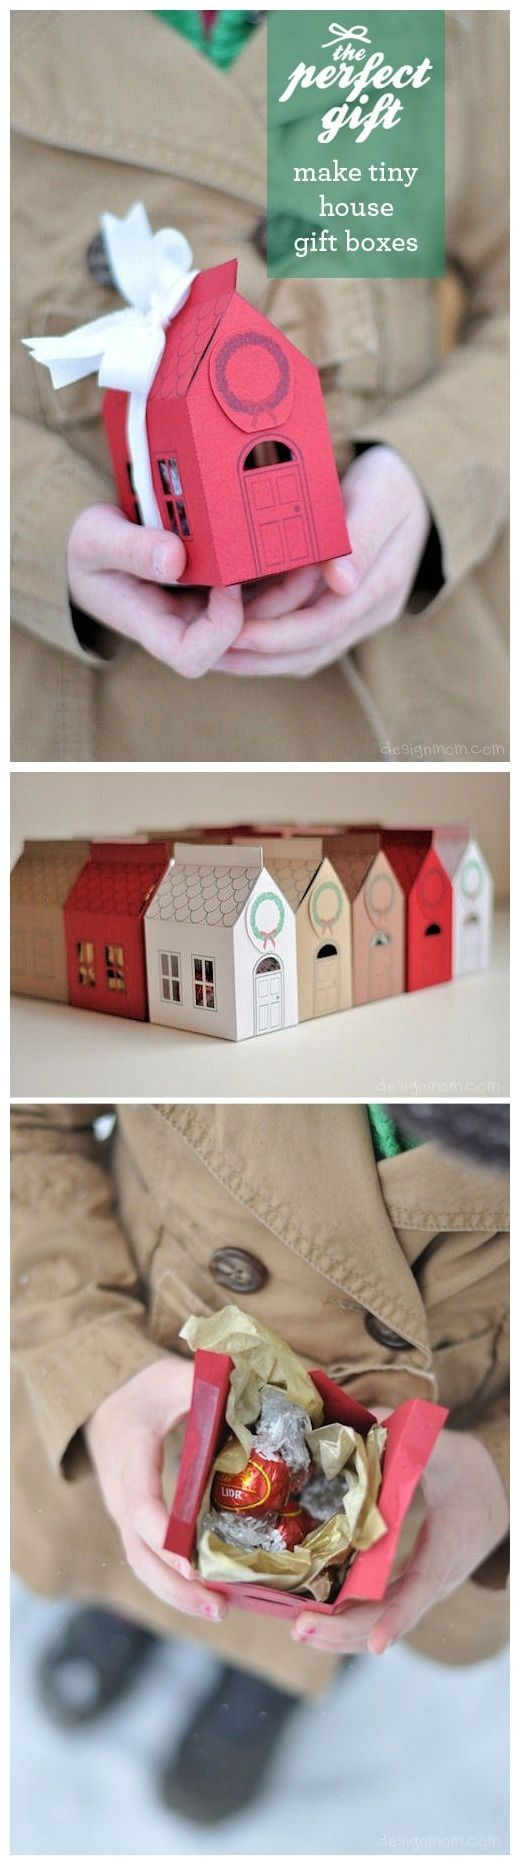 Check out these adorable house-shaped holiday gift boxes that are super easy to put together. You'll want to make one for neighbors, postal workers, teachers — pretty much everyone you know!